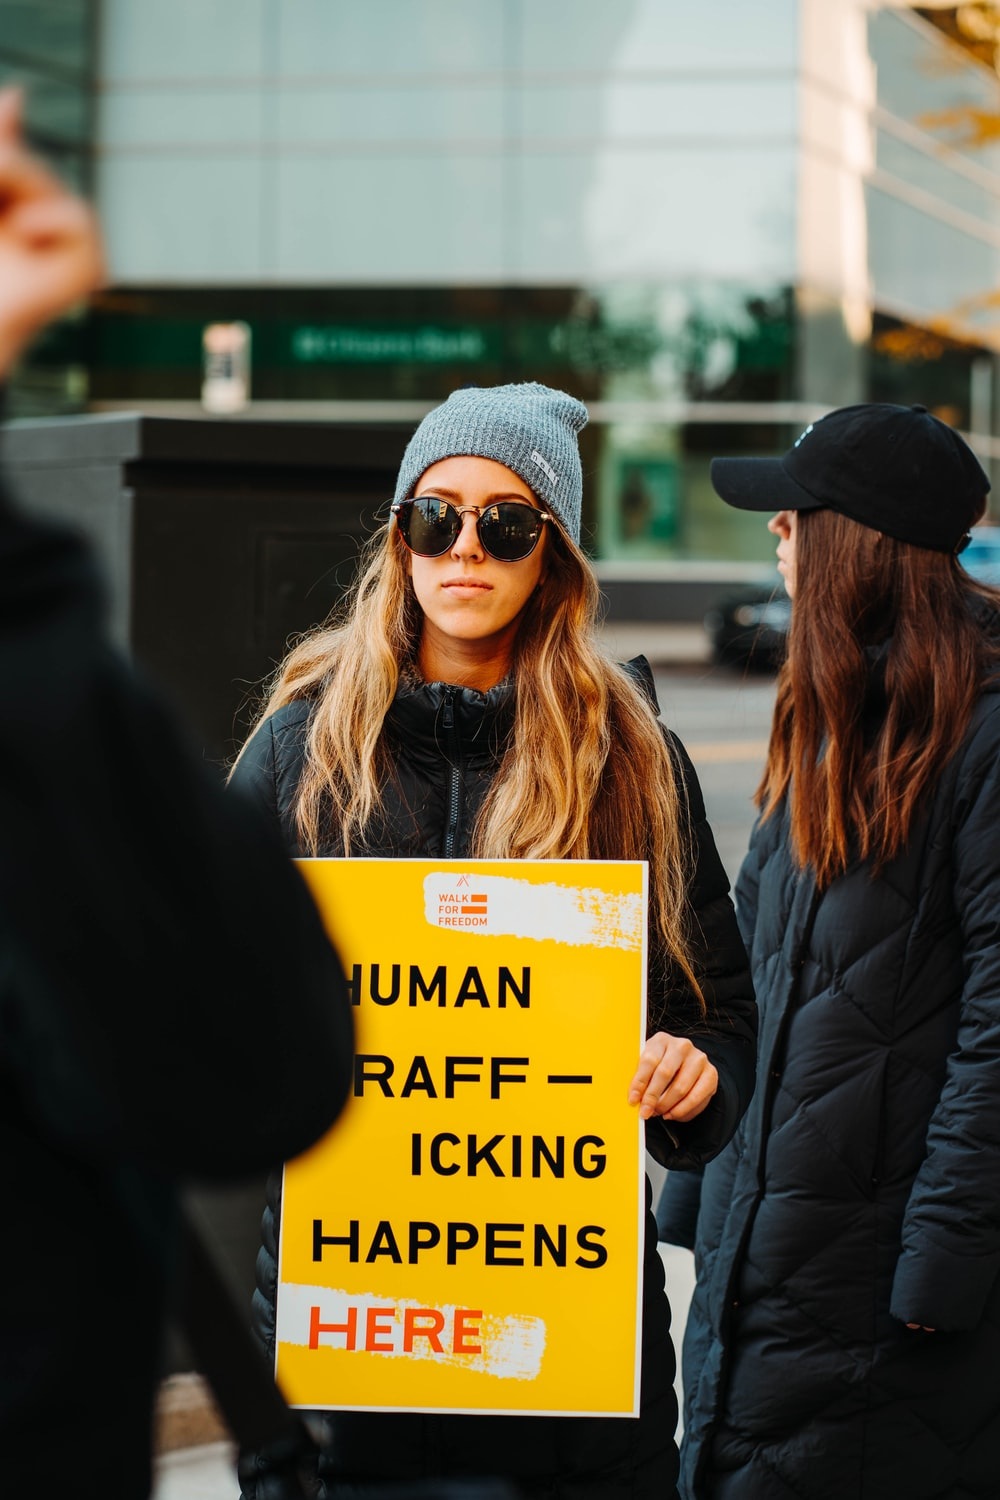 woman in black jacket wearing black sunglasses holding yellow and black signage